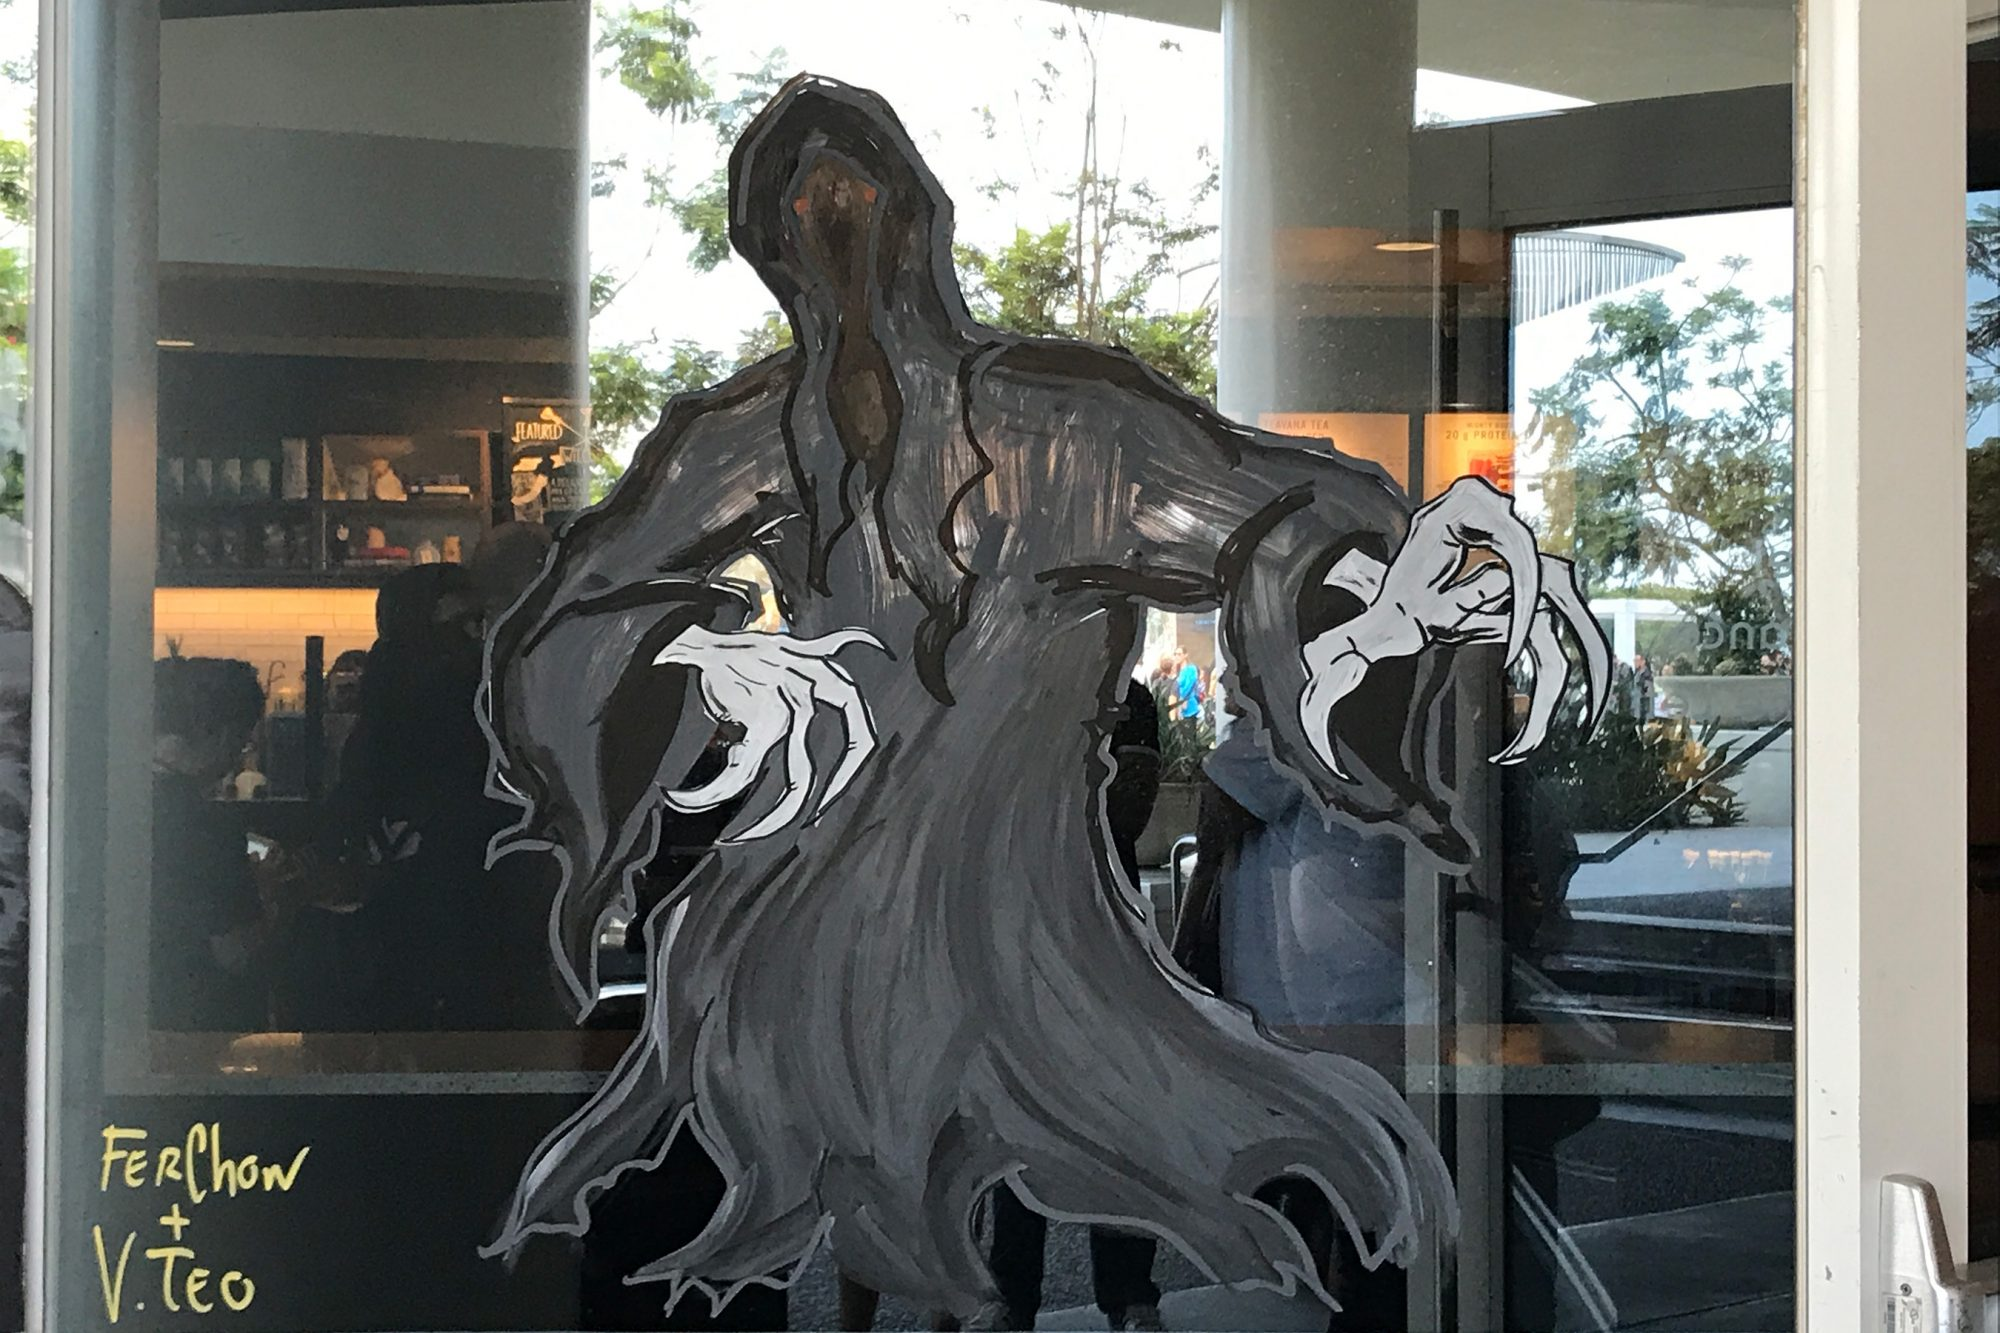 Look out for the dementor!